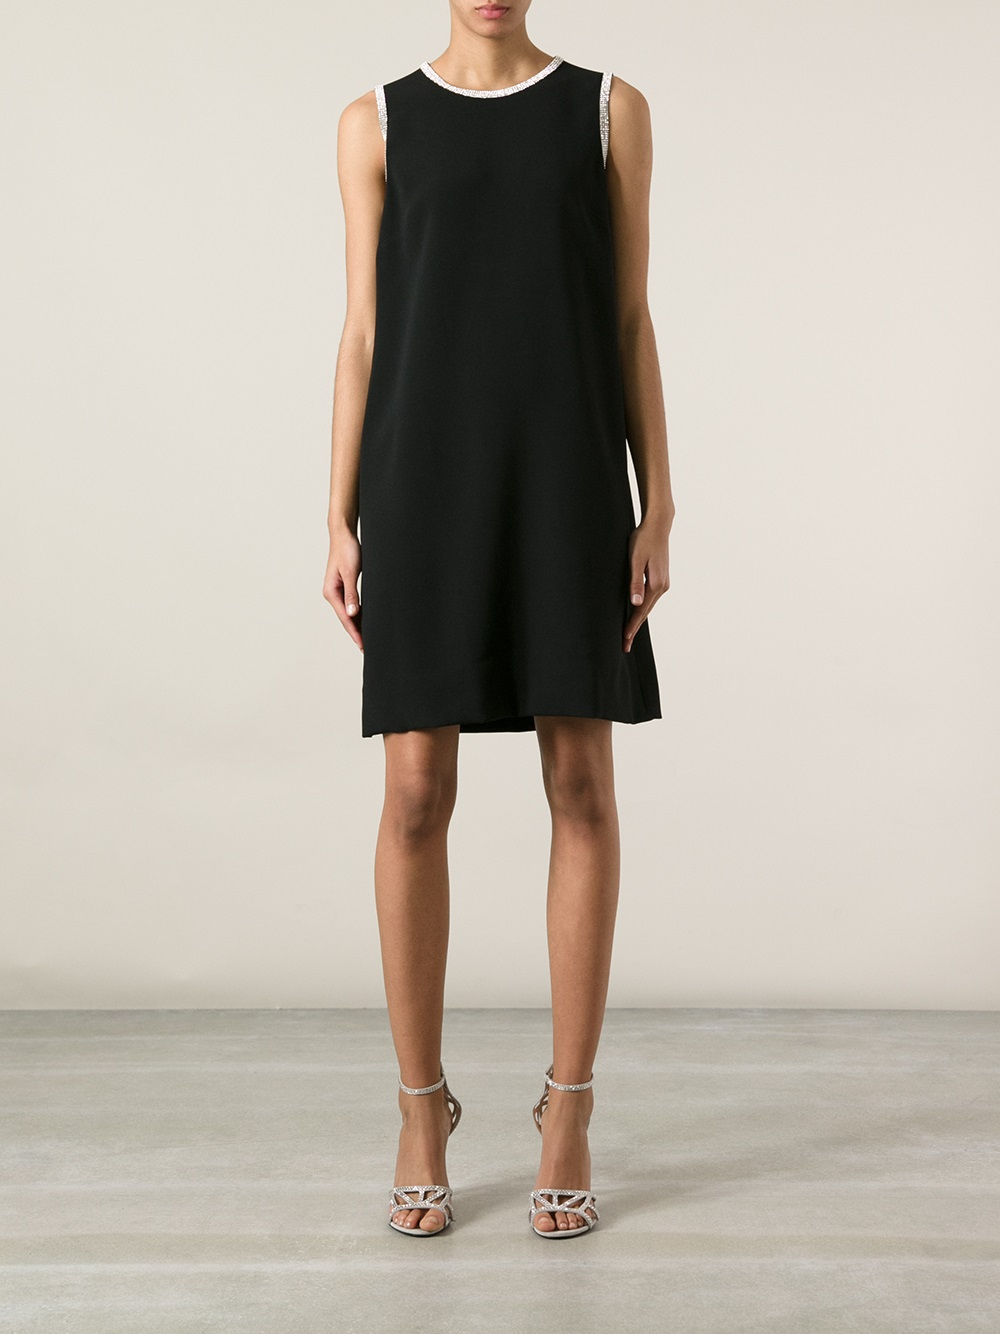 Dolce Amp Gabbana Sleeveless Shift Dress In Black Lyst